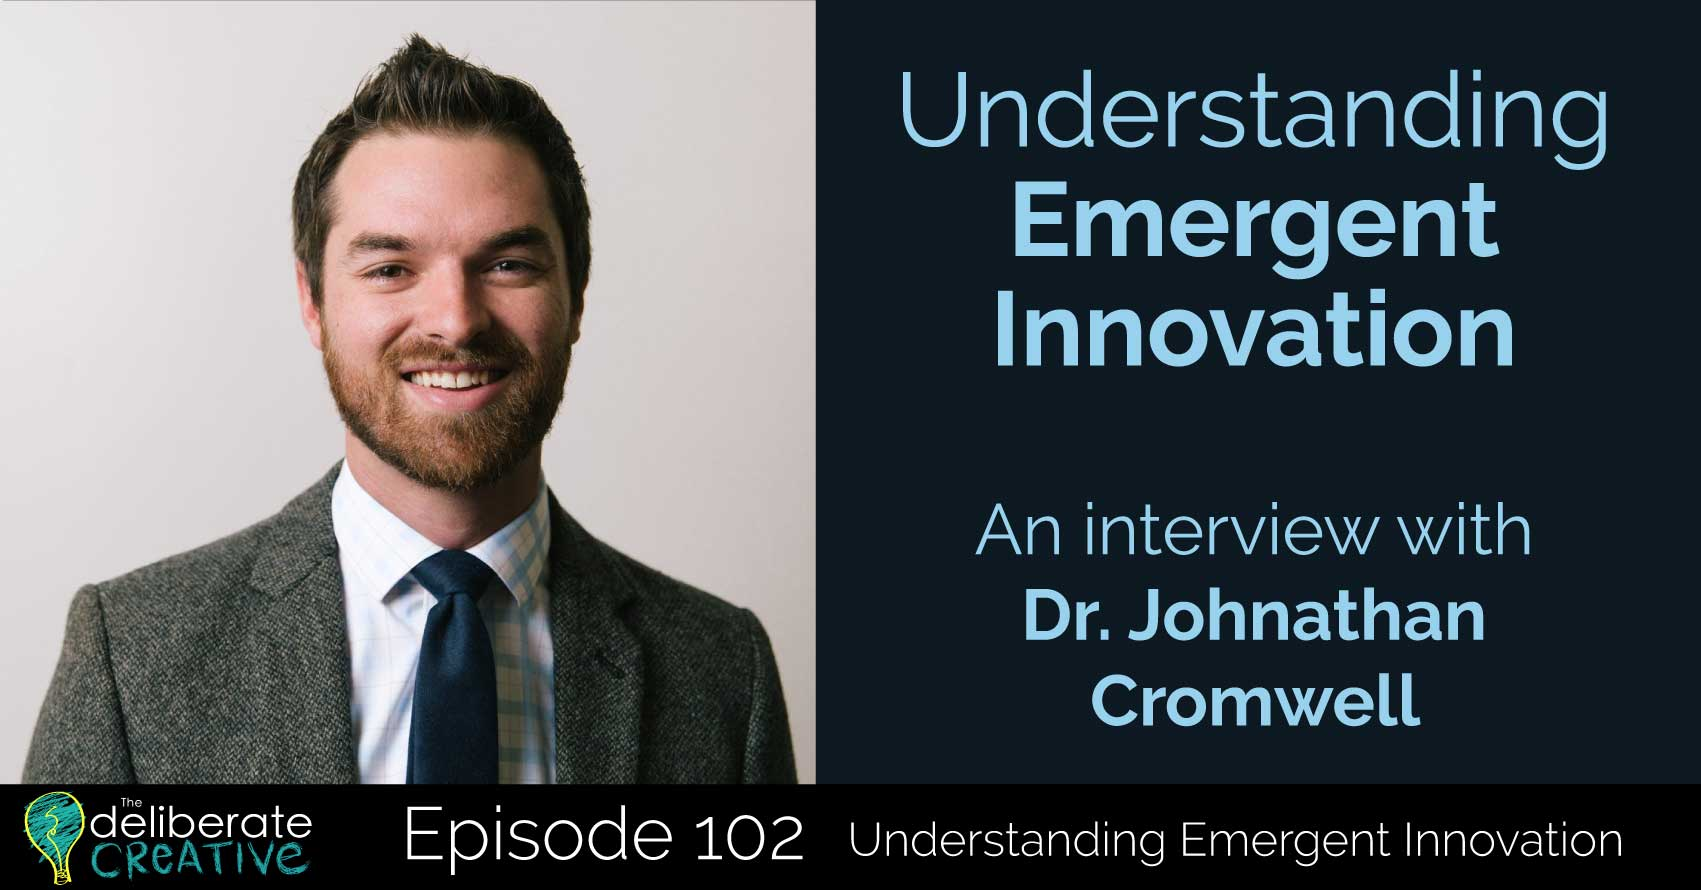 The Deliberate Creative Podcast: Emergent Innovation with Johnathan Cromwell